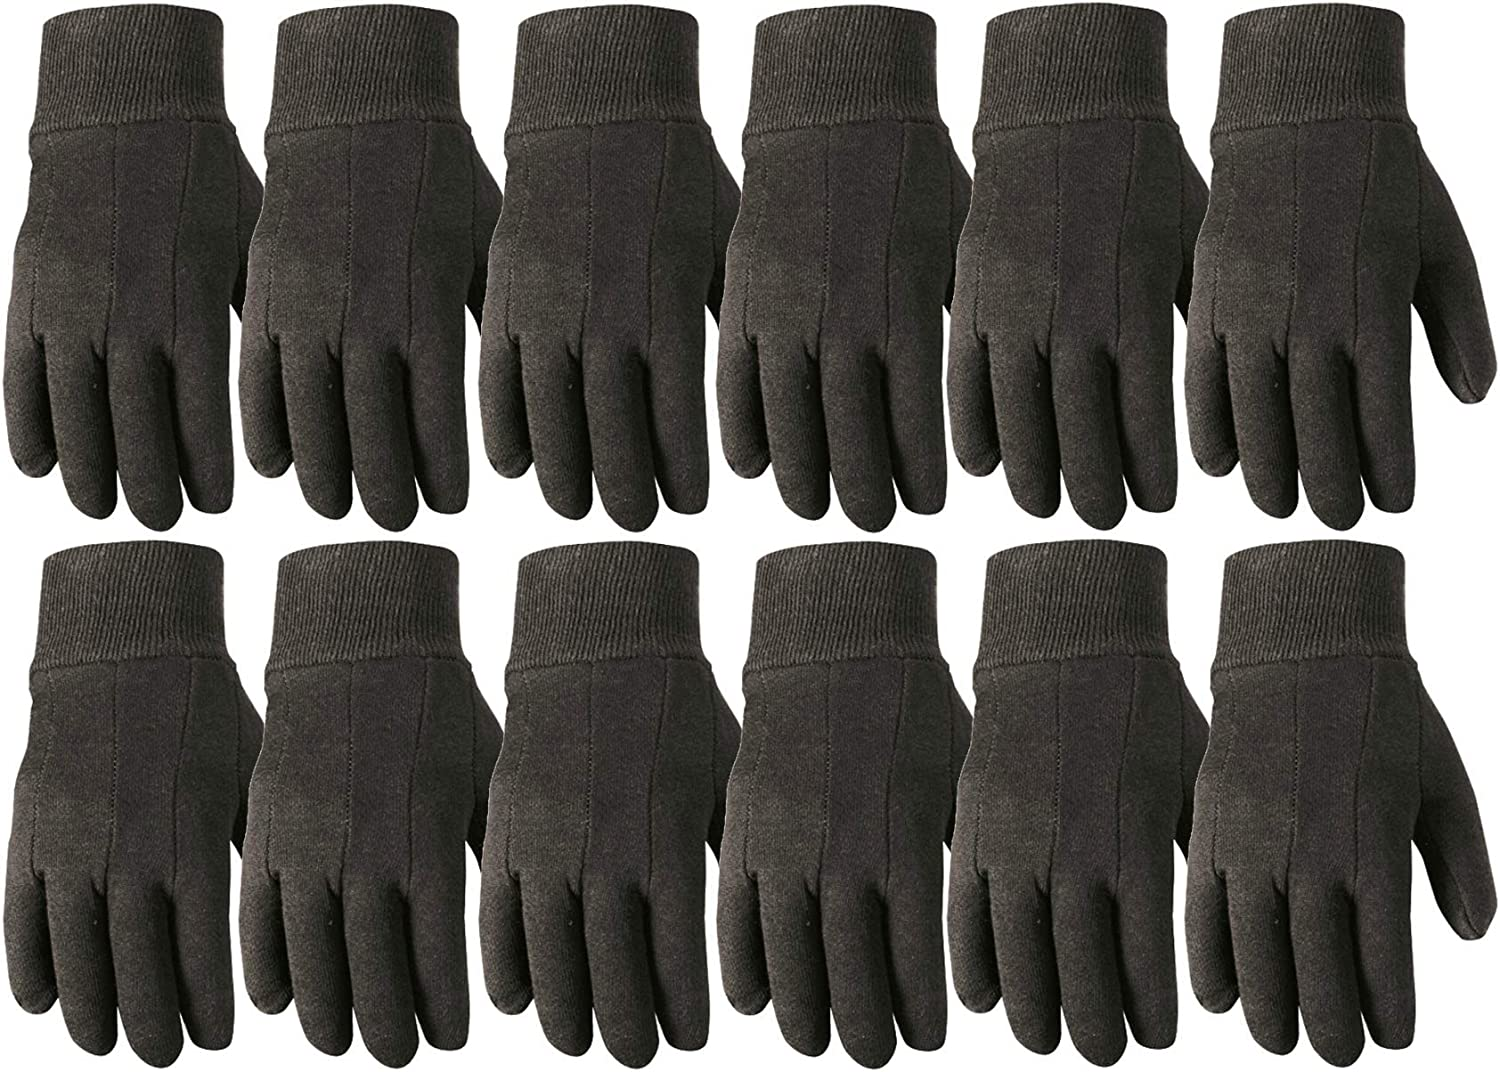 MENS LEATHER WORK GLOVES LEATHER PALM WORK GLOVES 12 PK LARGE